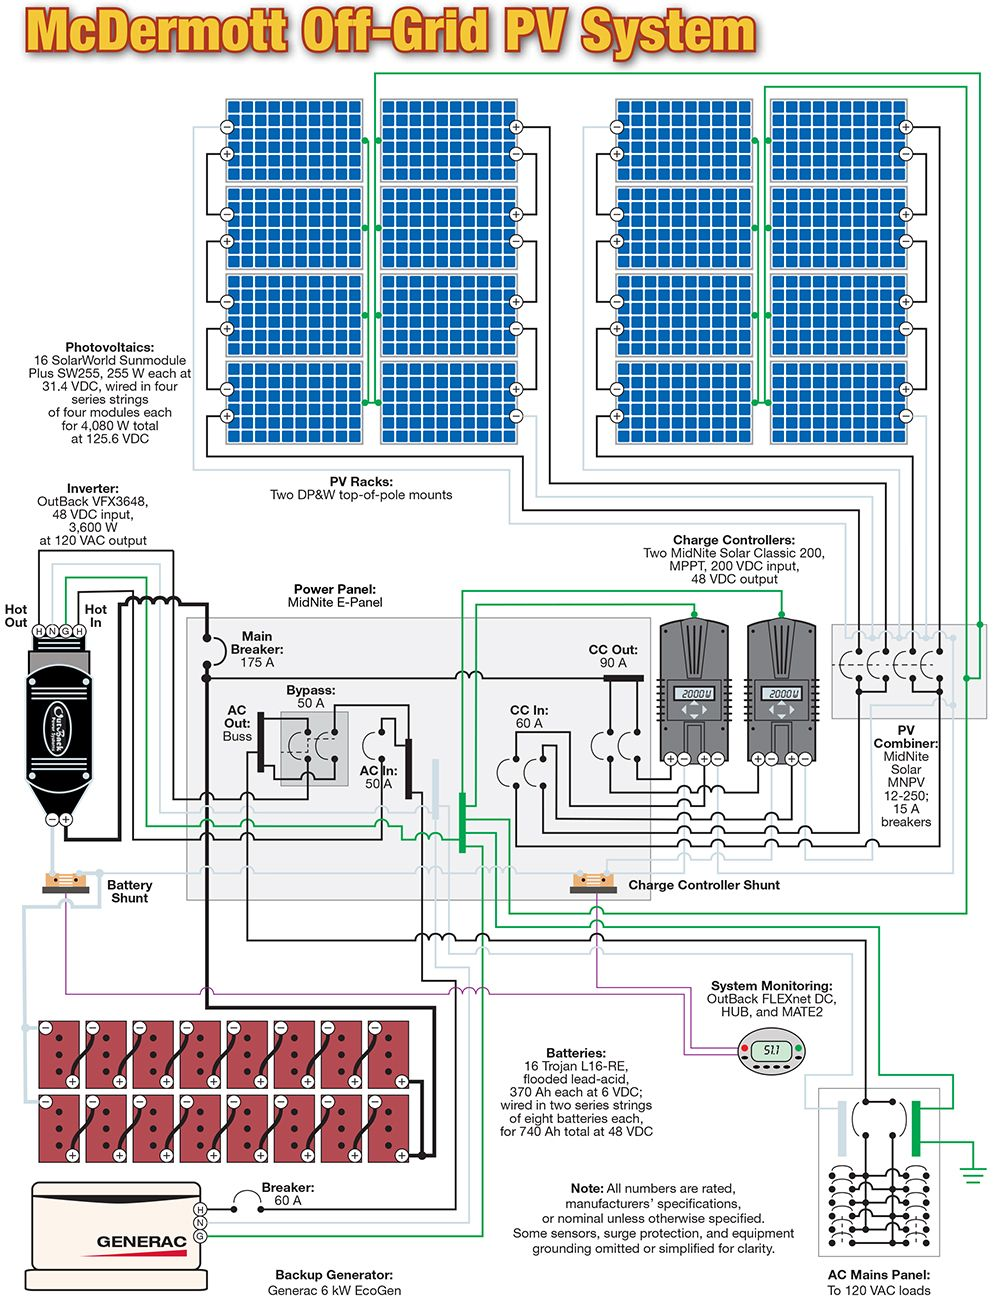 wiring off grid pv system 4kwh  [ 1000 x 1308 Pixel ]